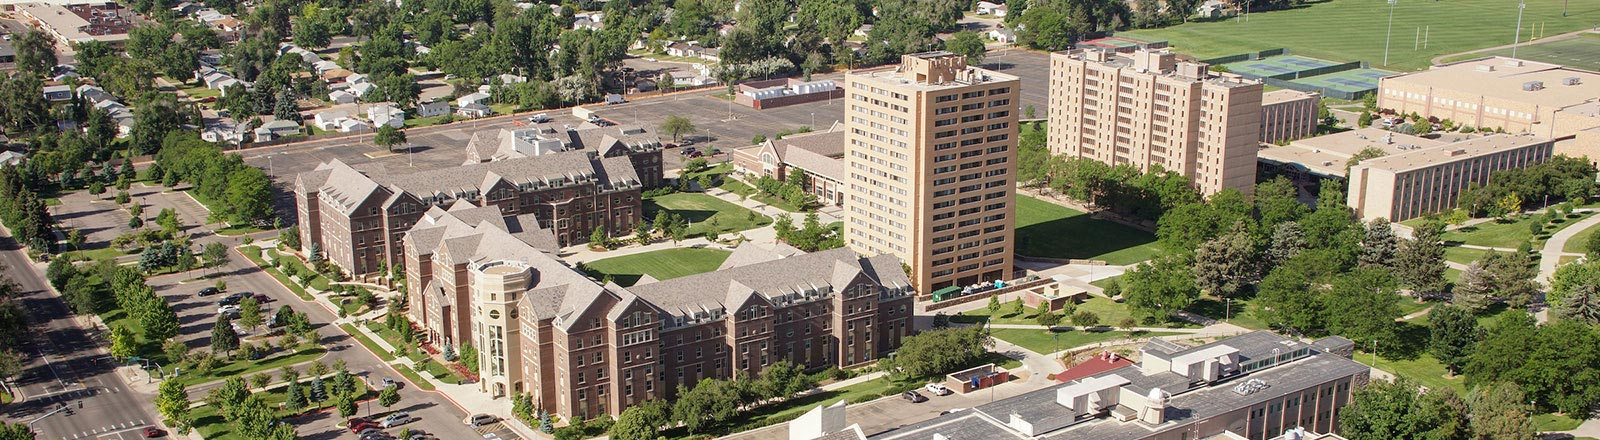 Ariel view of the UNC Campus